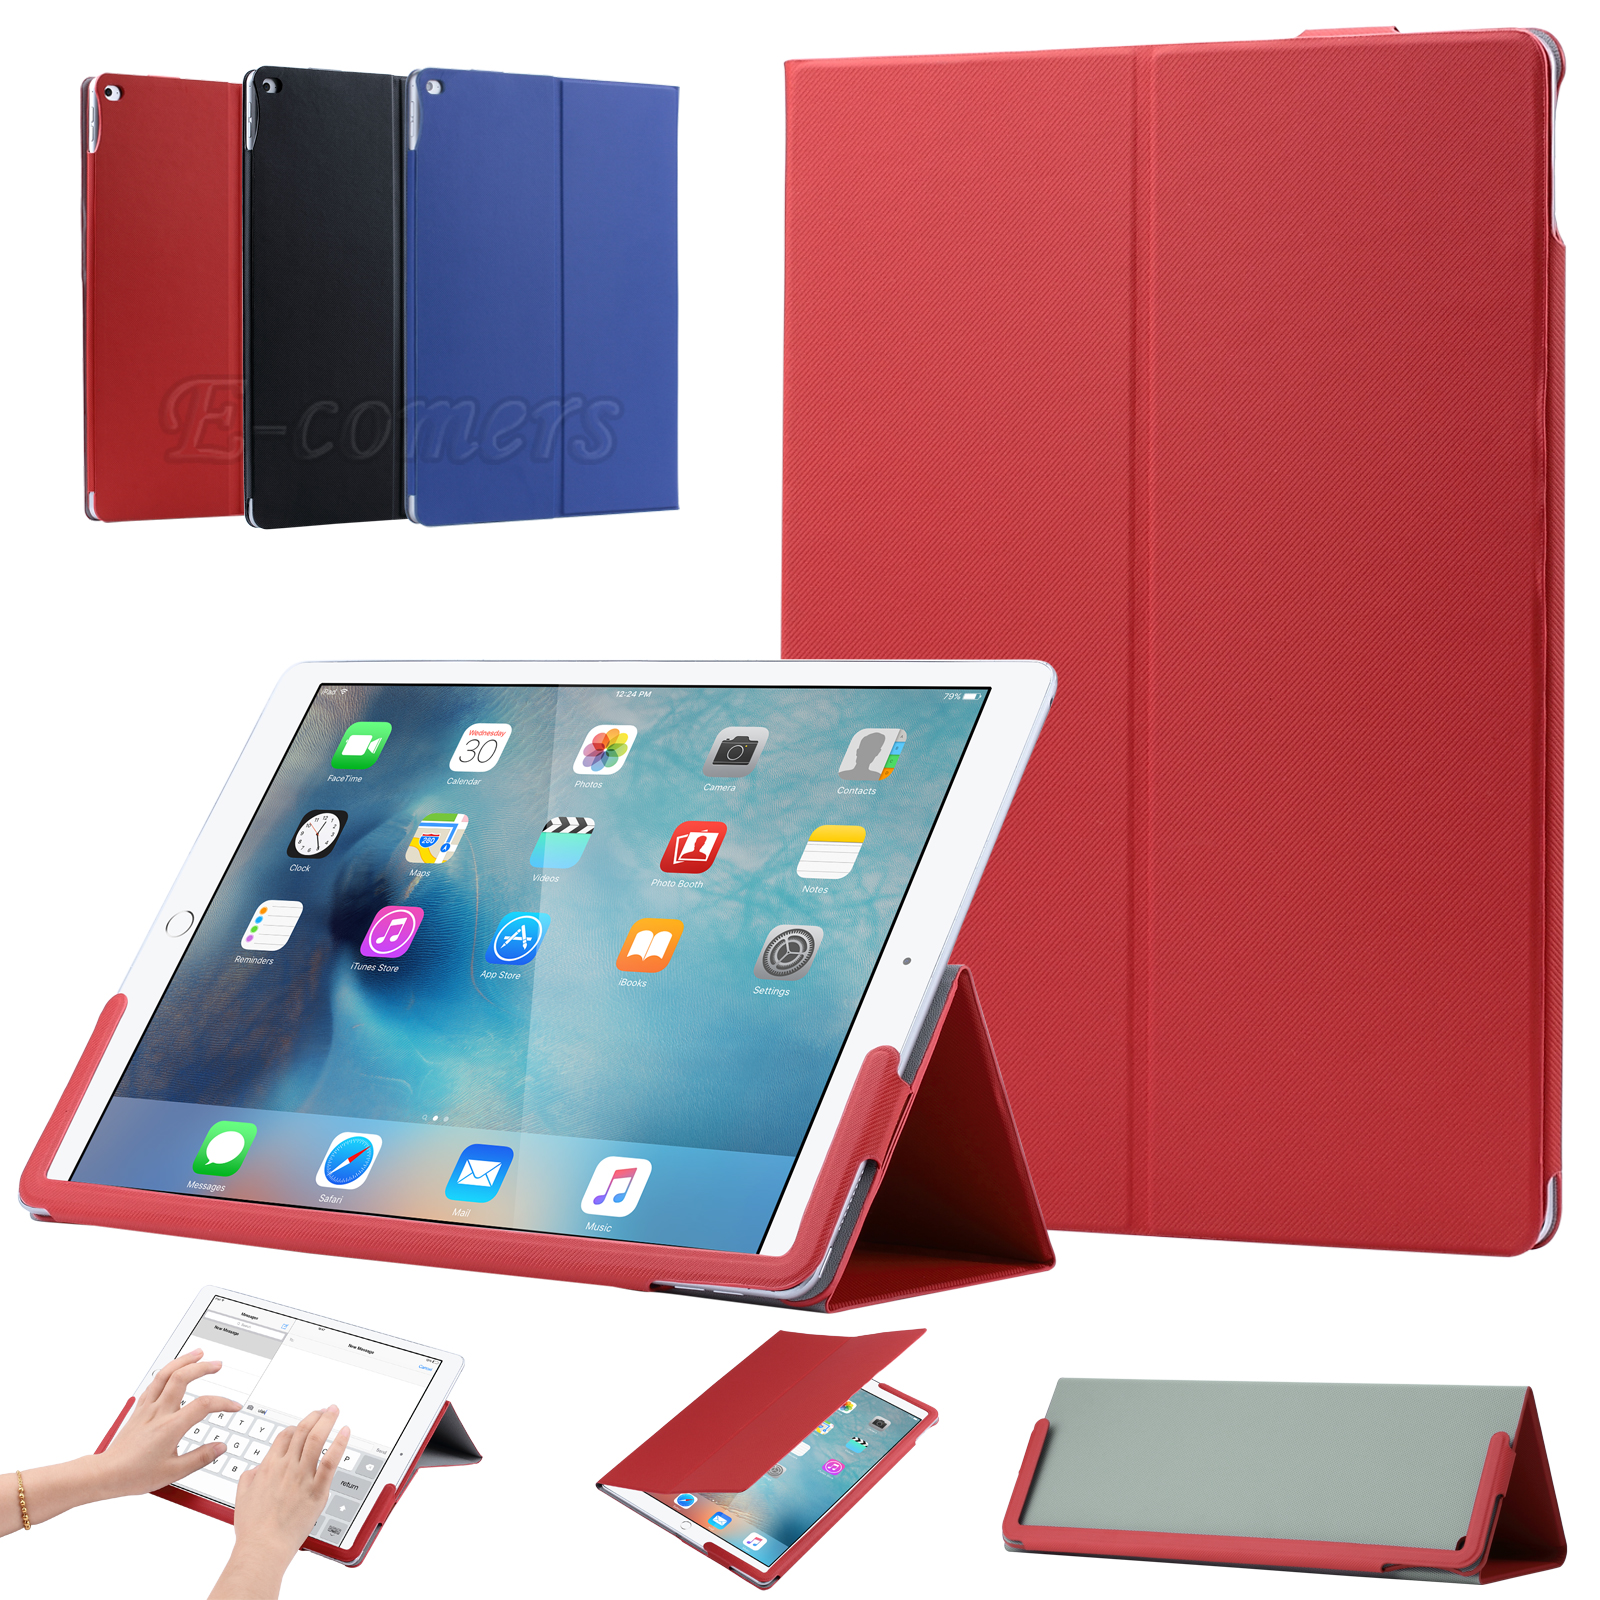 ULAK Stand Slim Folio Cover Premium PU Leather Case for Apple iPad Pro (12.9 inch) Tablet 2015 with Auto Wake/Sleep Feature(China (Mainland))